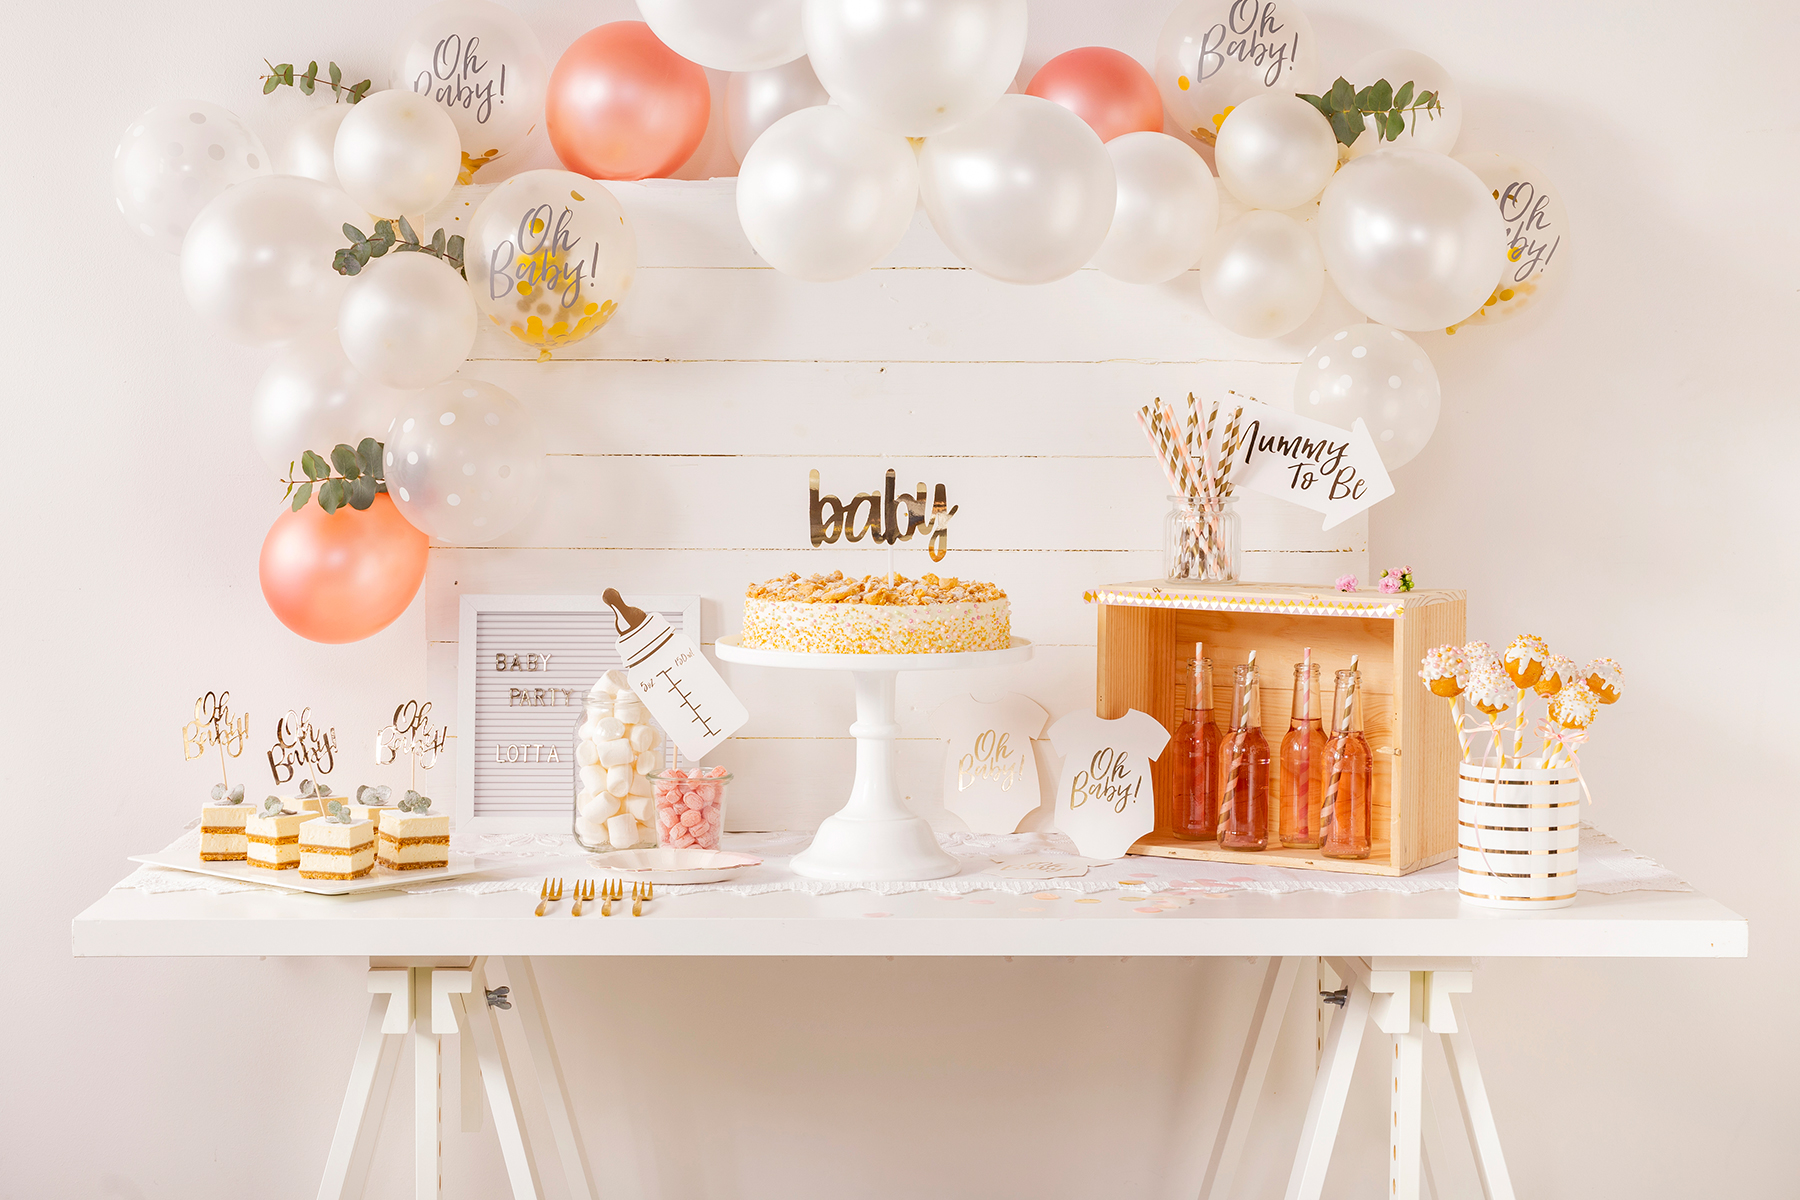 Sweet Table zur Babyparty